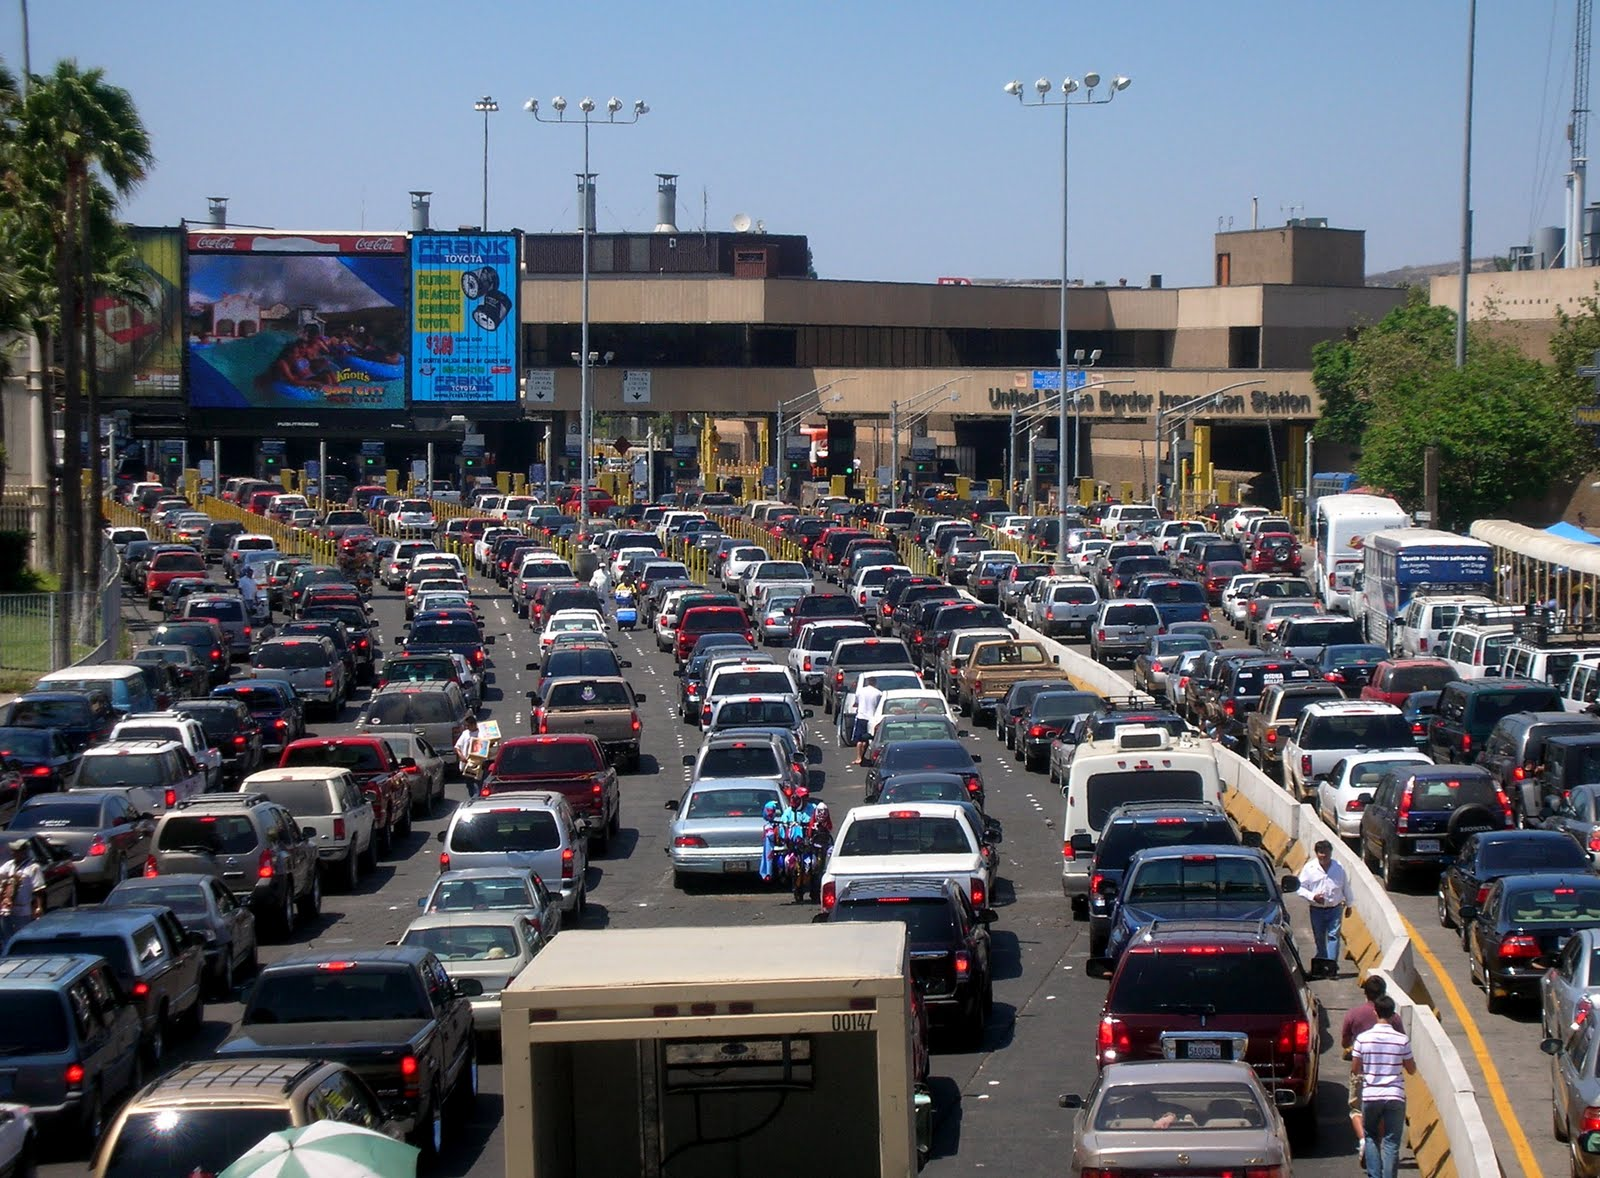 Holger Awakens Two US Citizens Shot Dead At Mexican Border